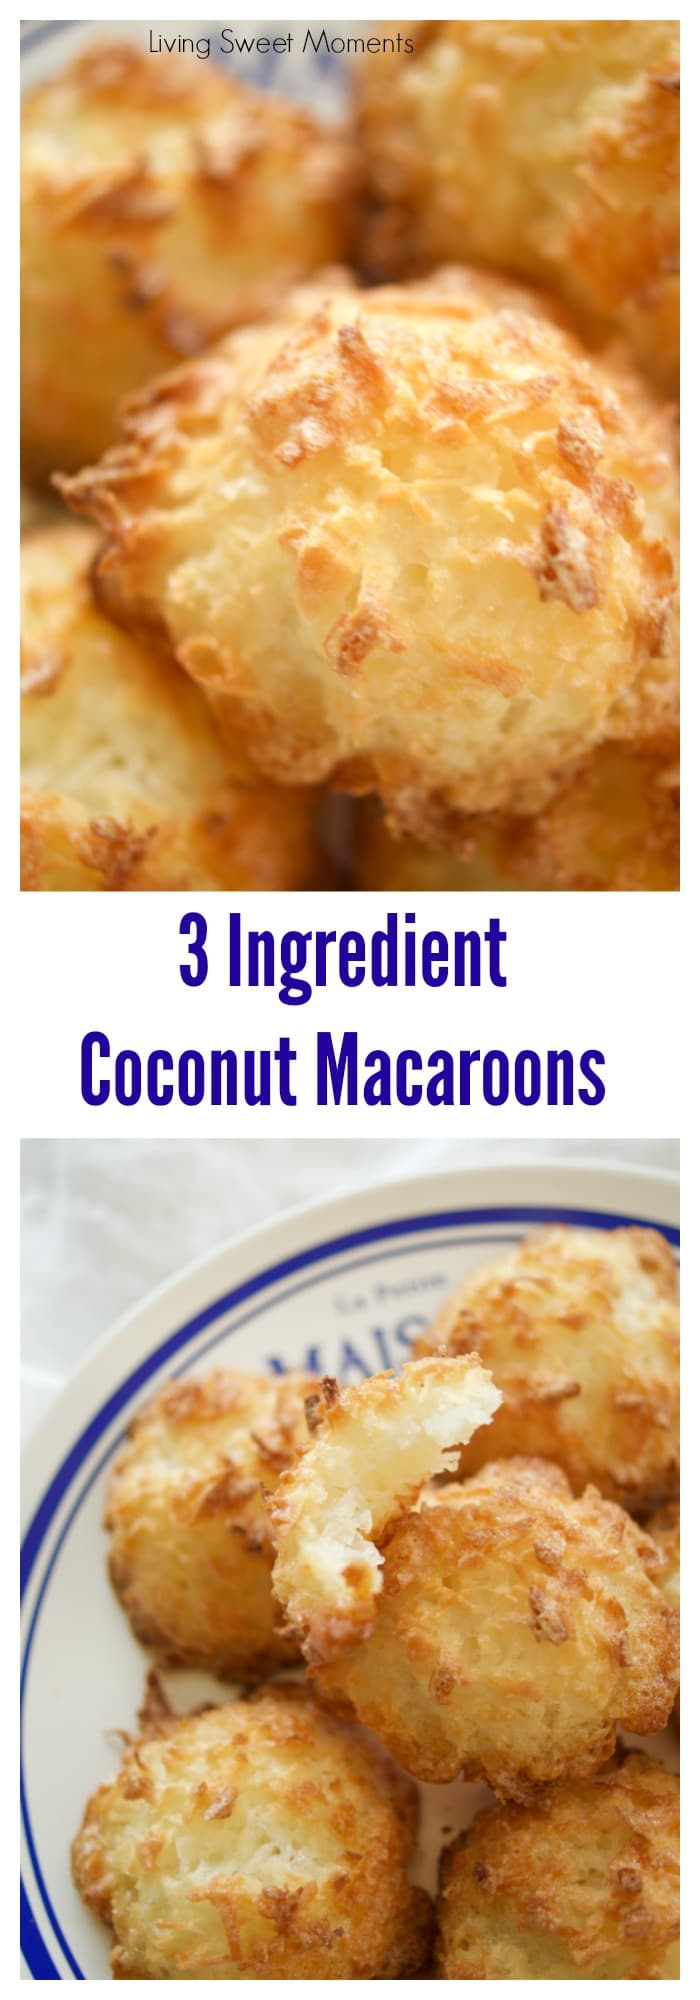 Make Perfect Coconut Cake